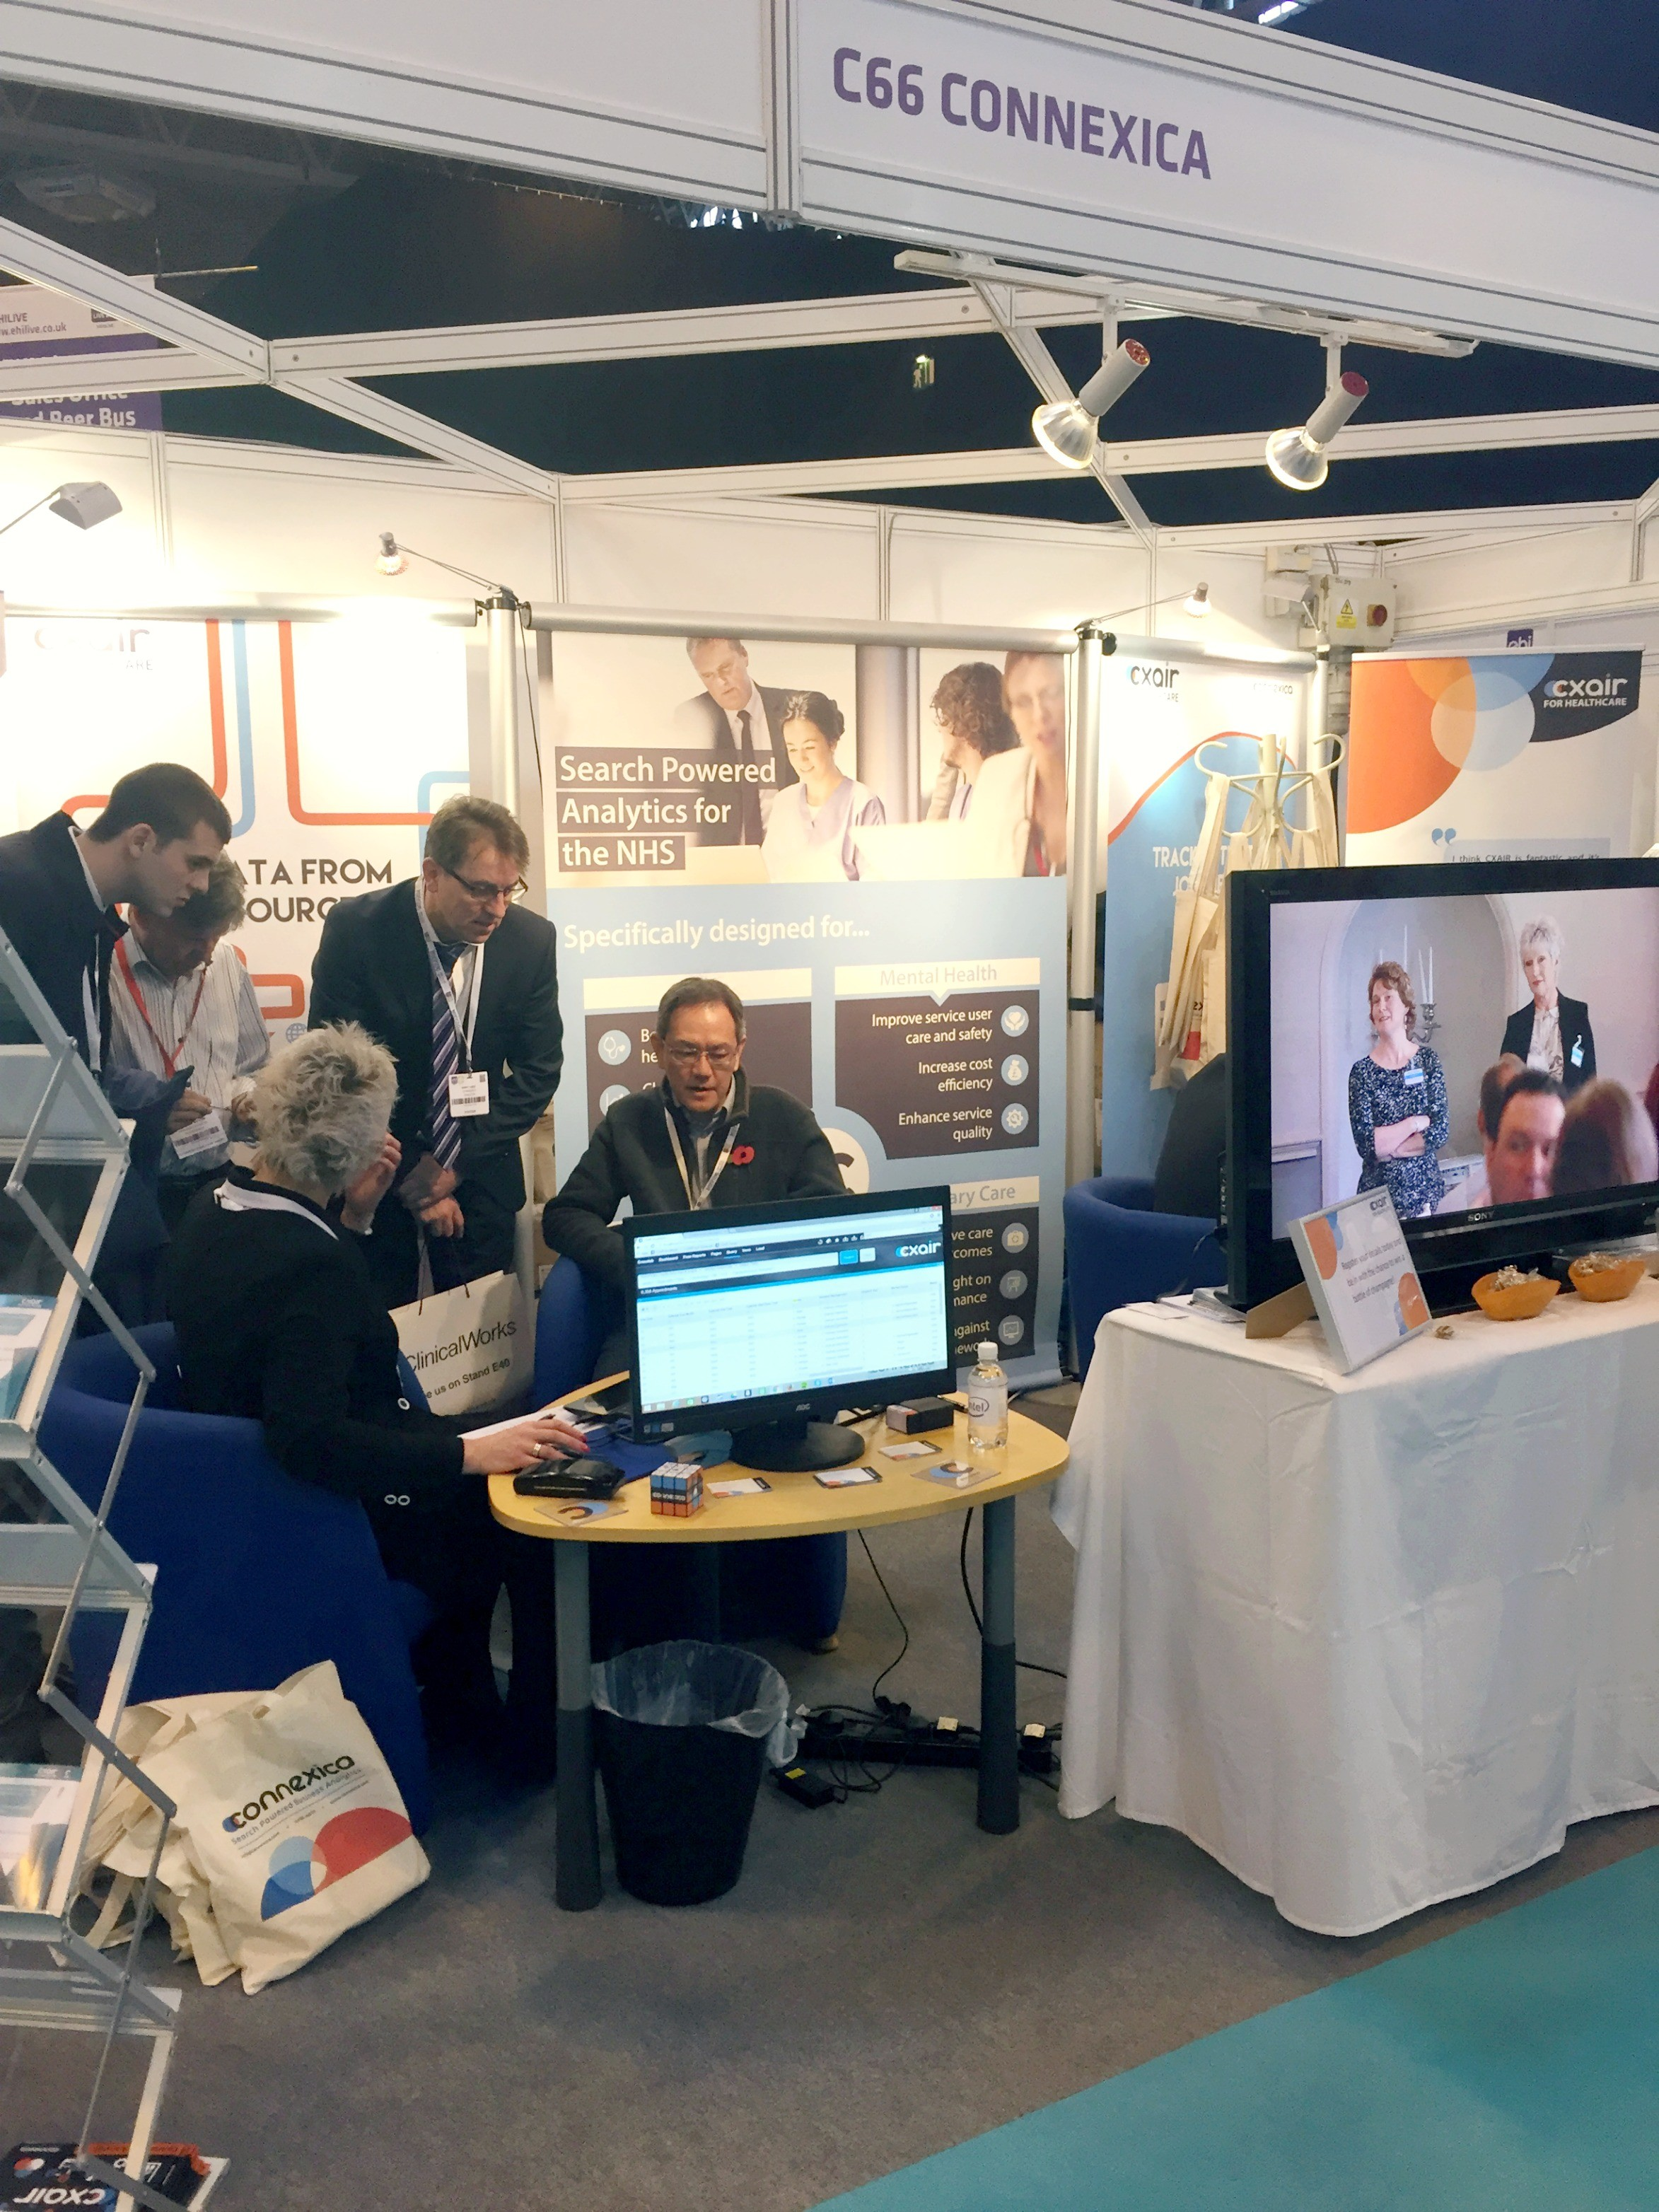 A photo of the Connexica stand at EHI Live 2015